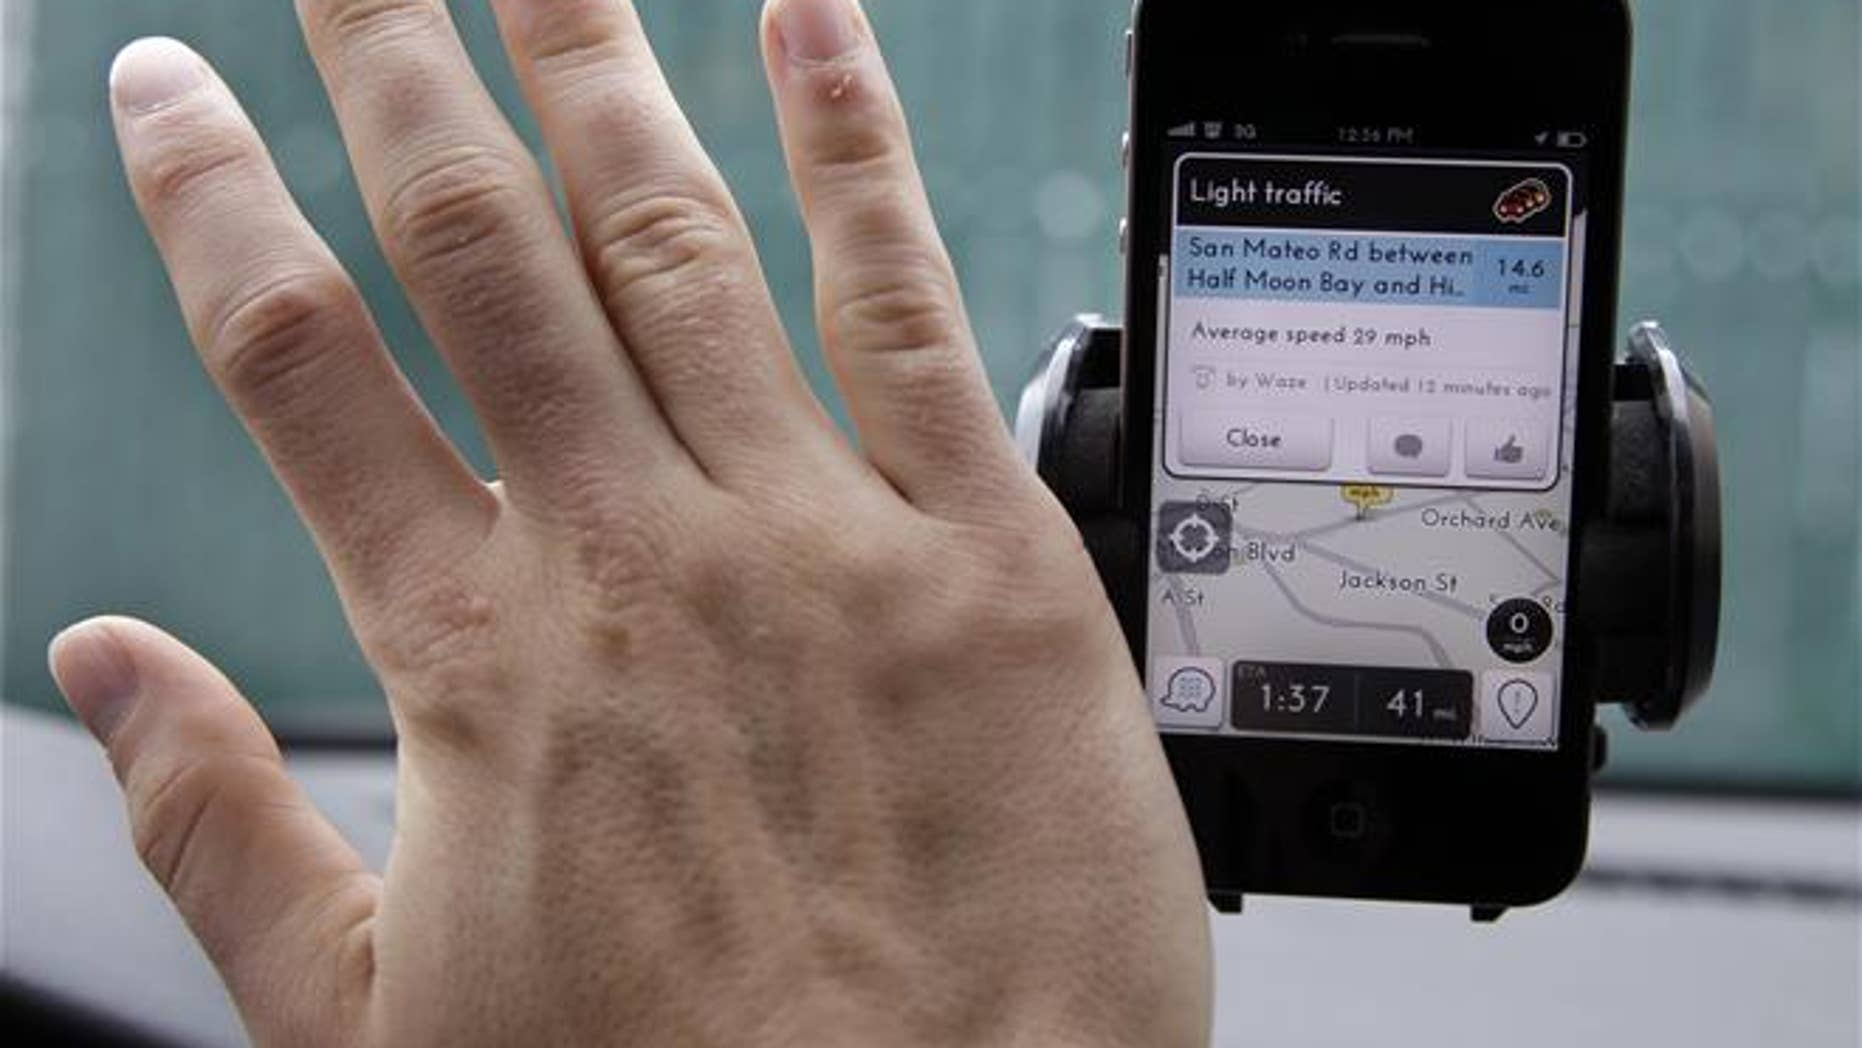 In this March 15, 2012, file photo, a user waves his hand over the Waze traffic and navigation app on his Apple iPhone in a Menlo Park, Calif., parking lot.